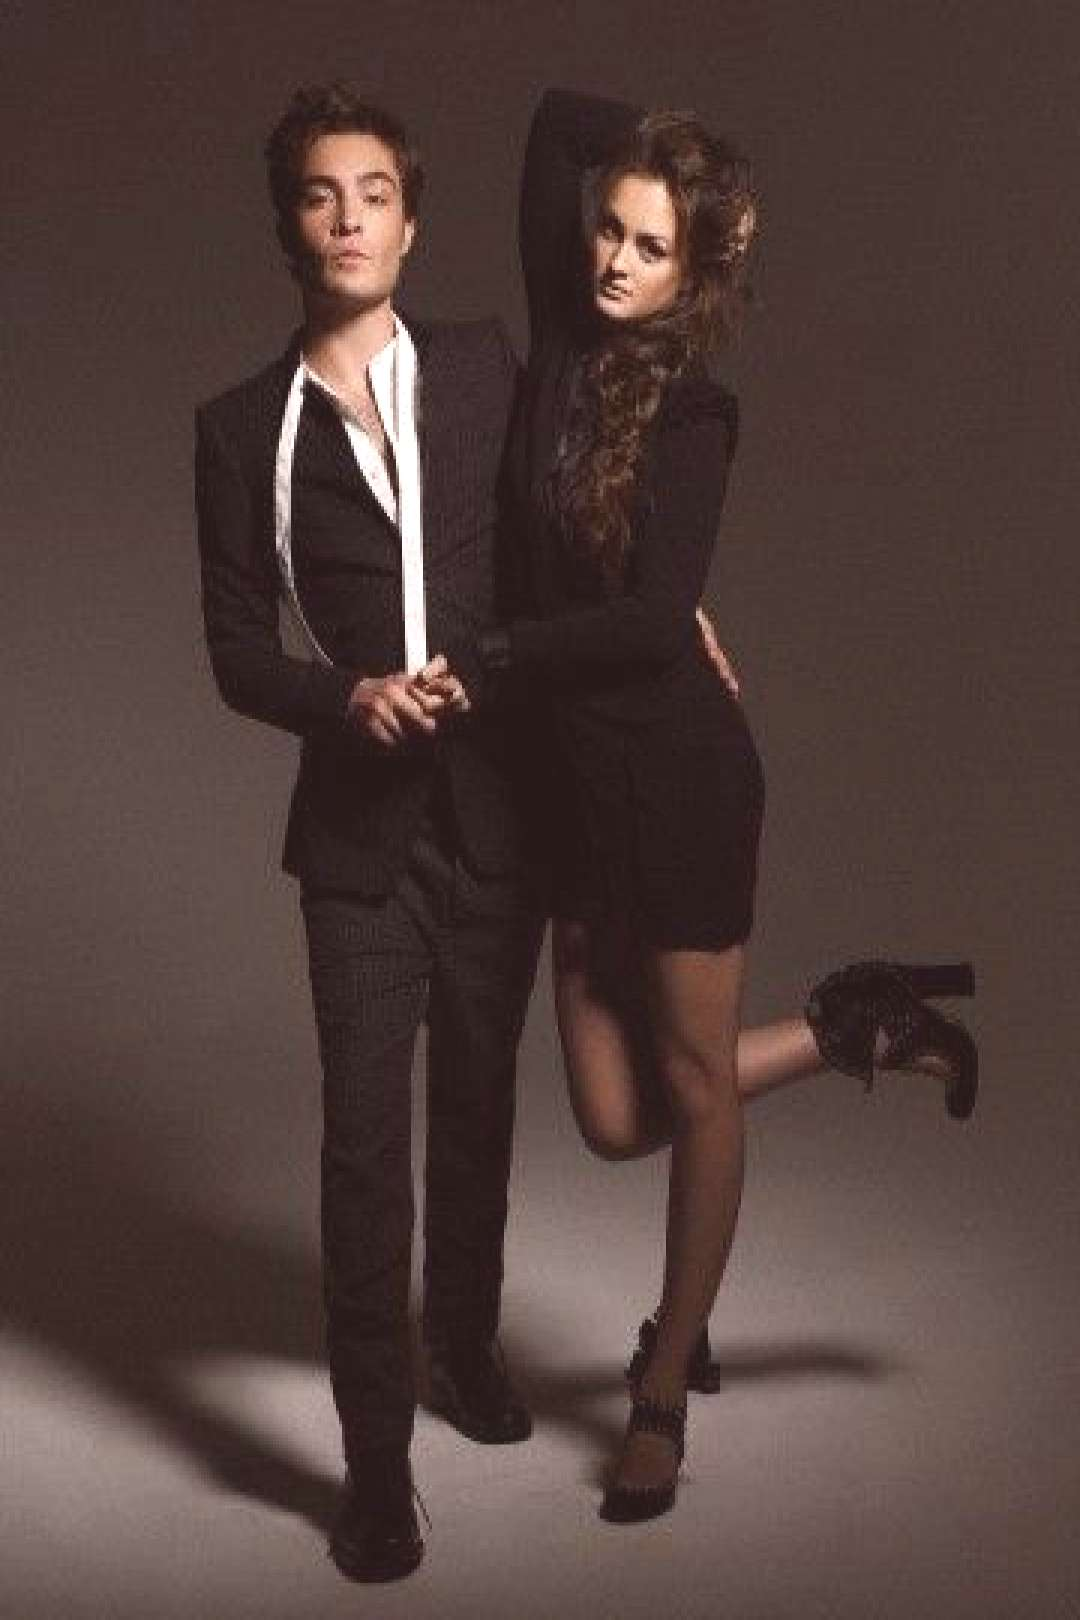 Leighton Meester and Ed Westwick in a photo shoot for